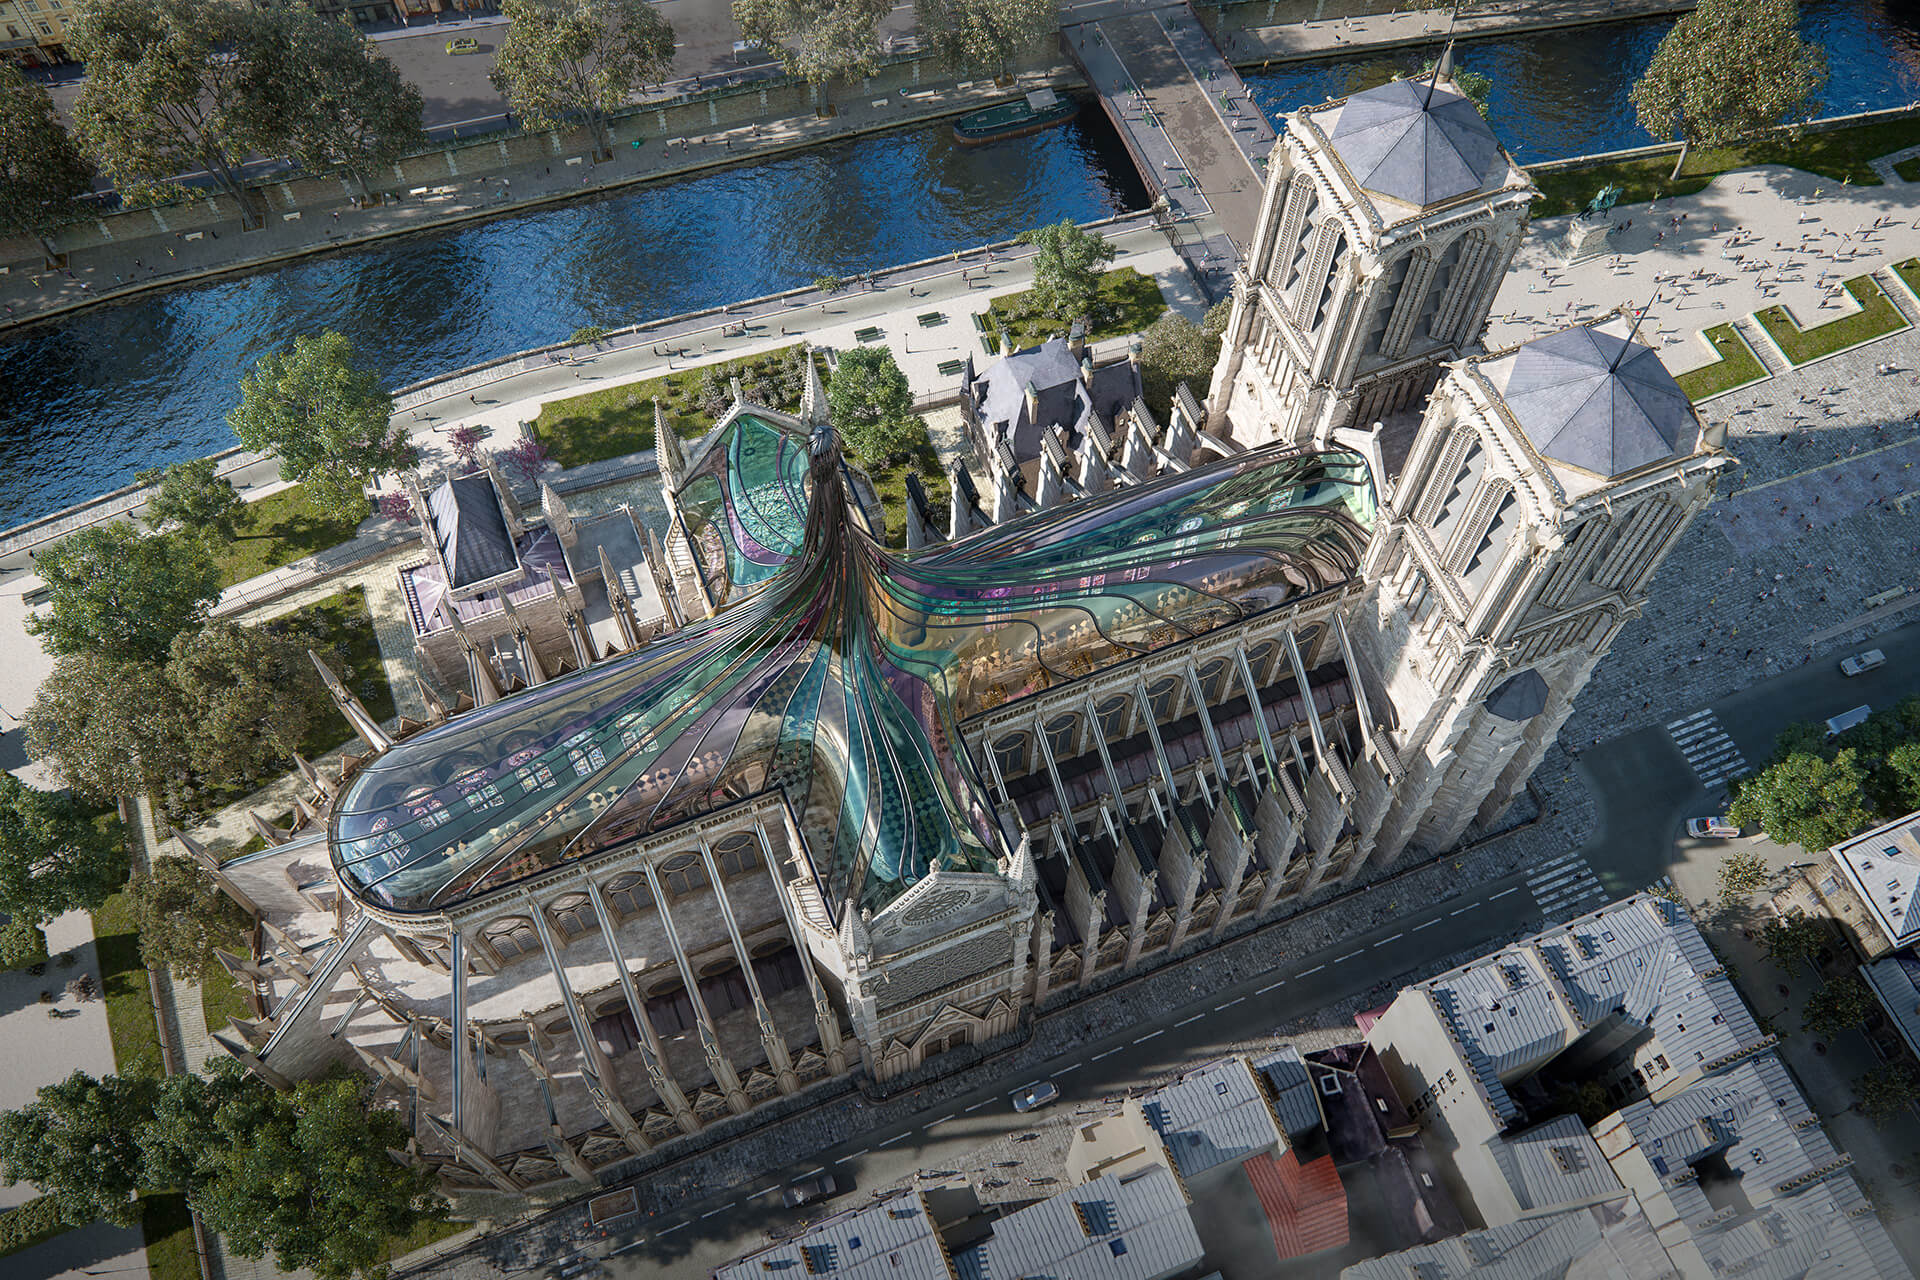 The concept as imagined in the day | Notre Dame cathedral roof restoration proposal by Trnsfrm | STIRworld